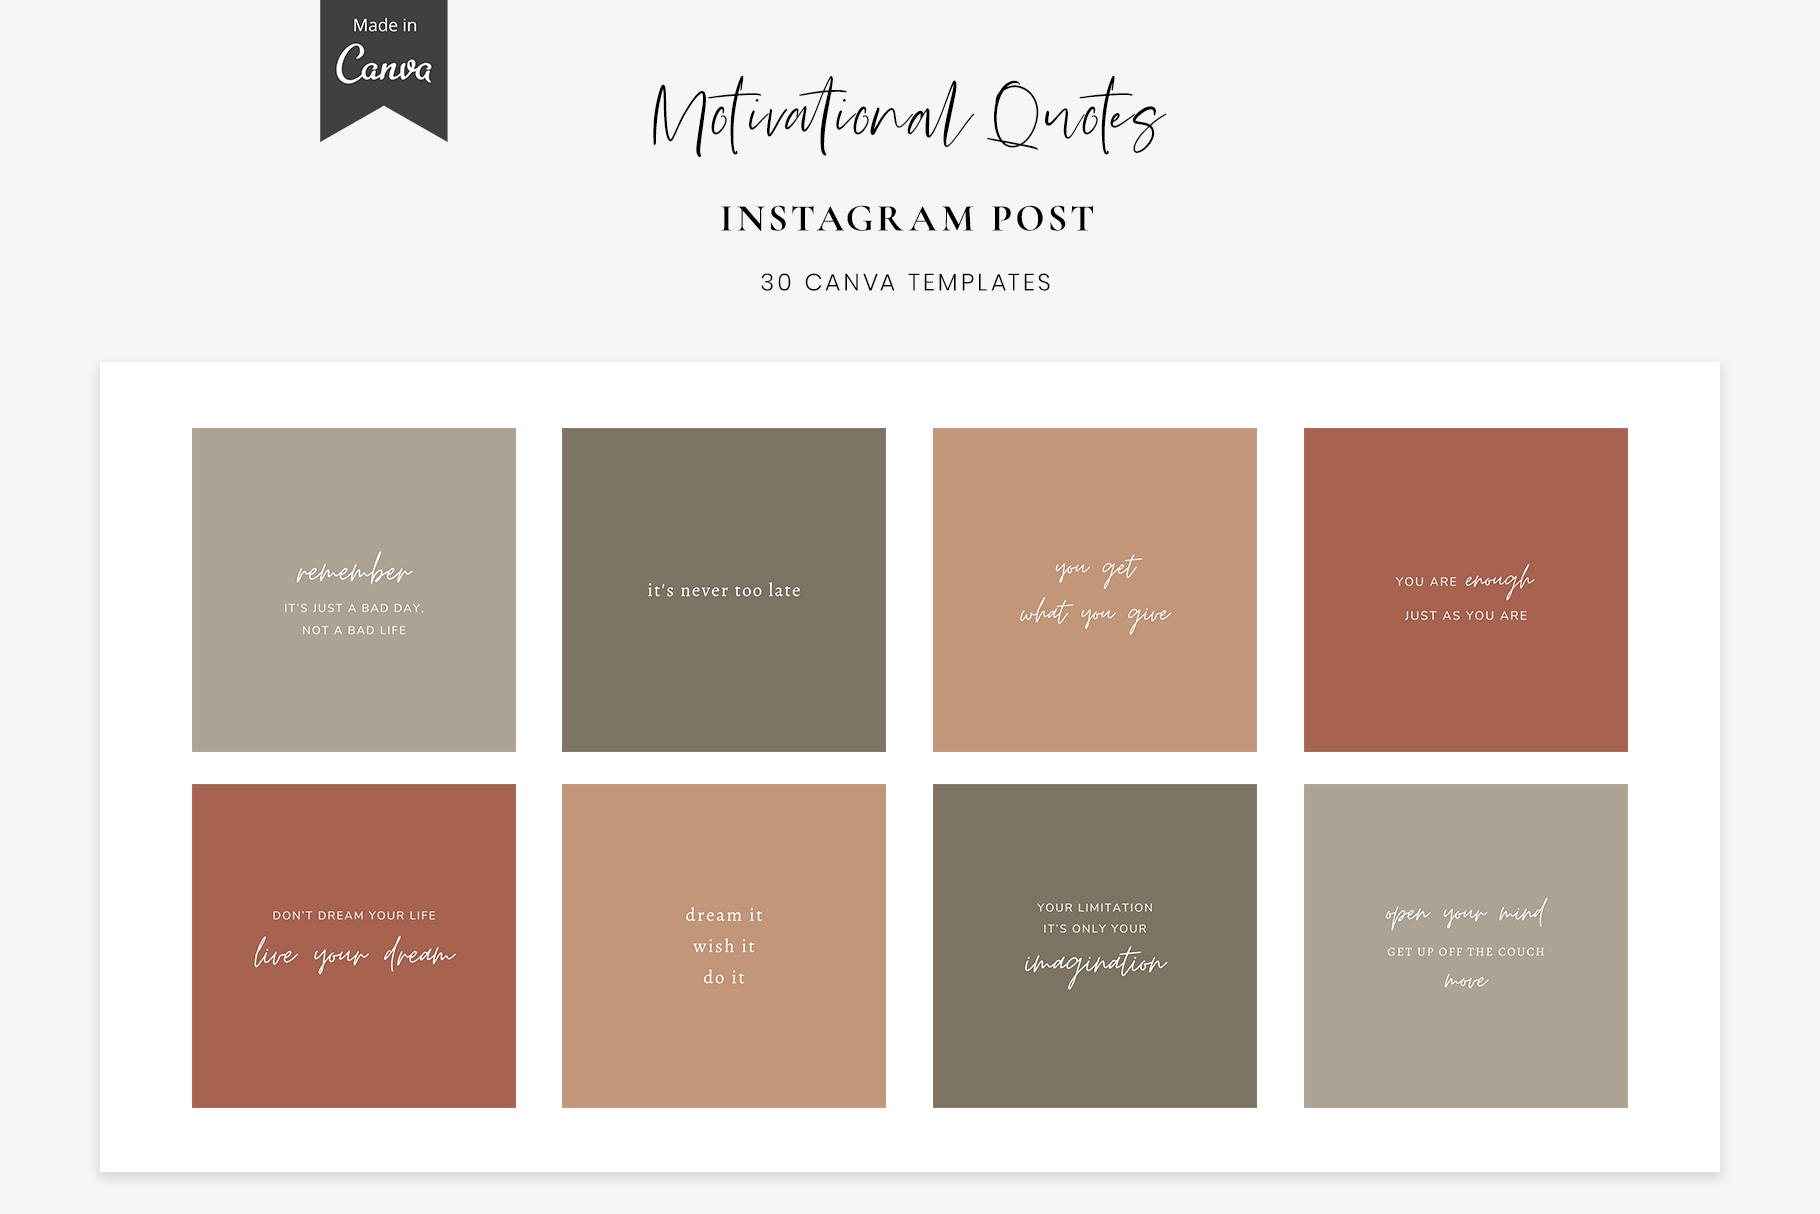 Instagram Quotes Canva Templates Graphic By Stylishdesign